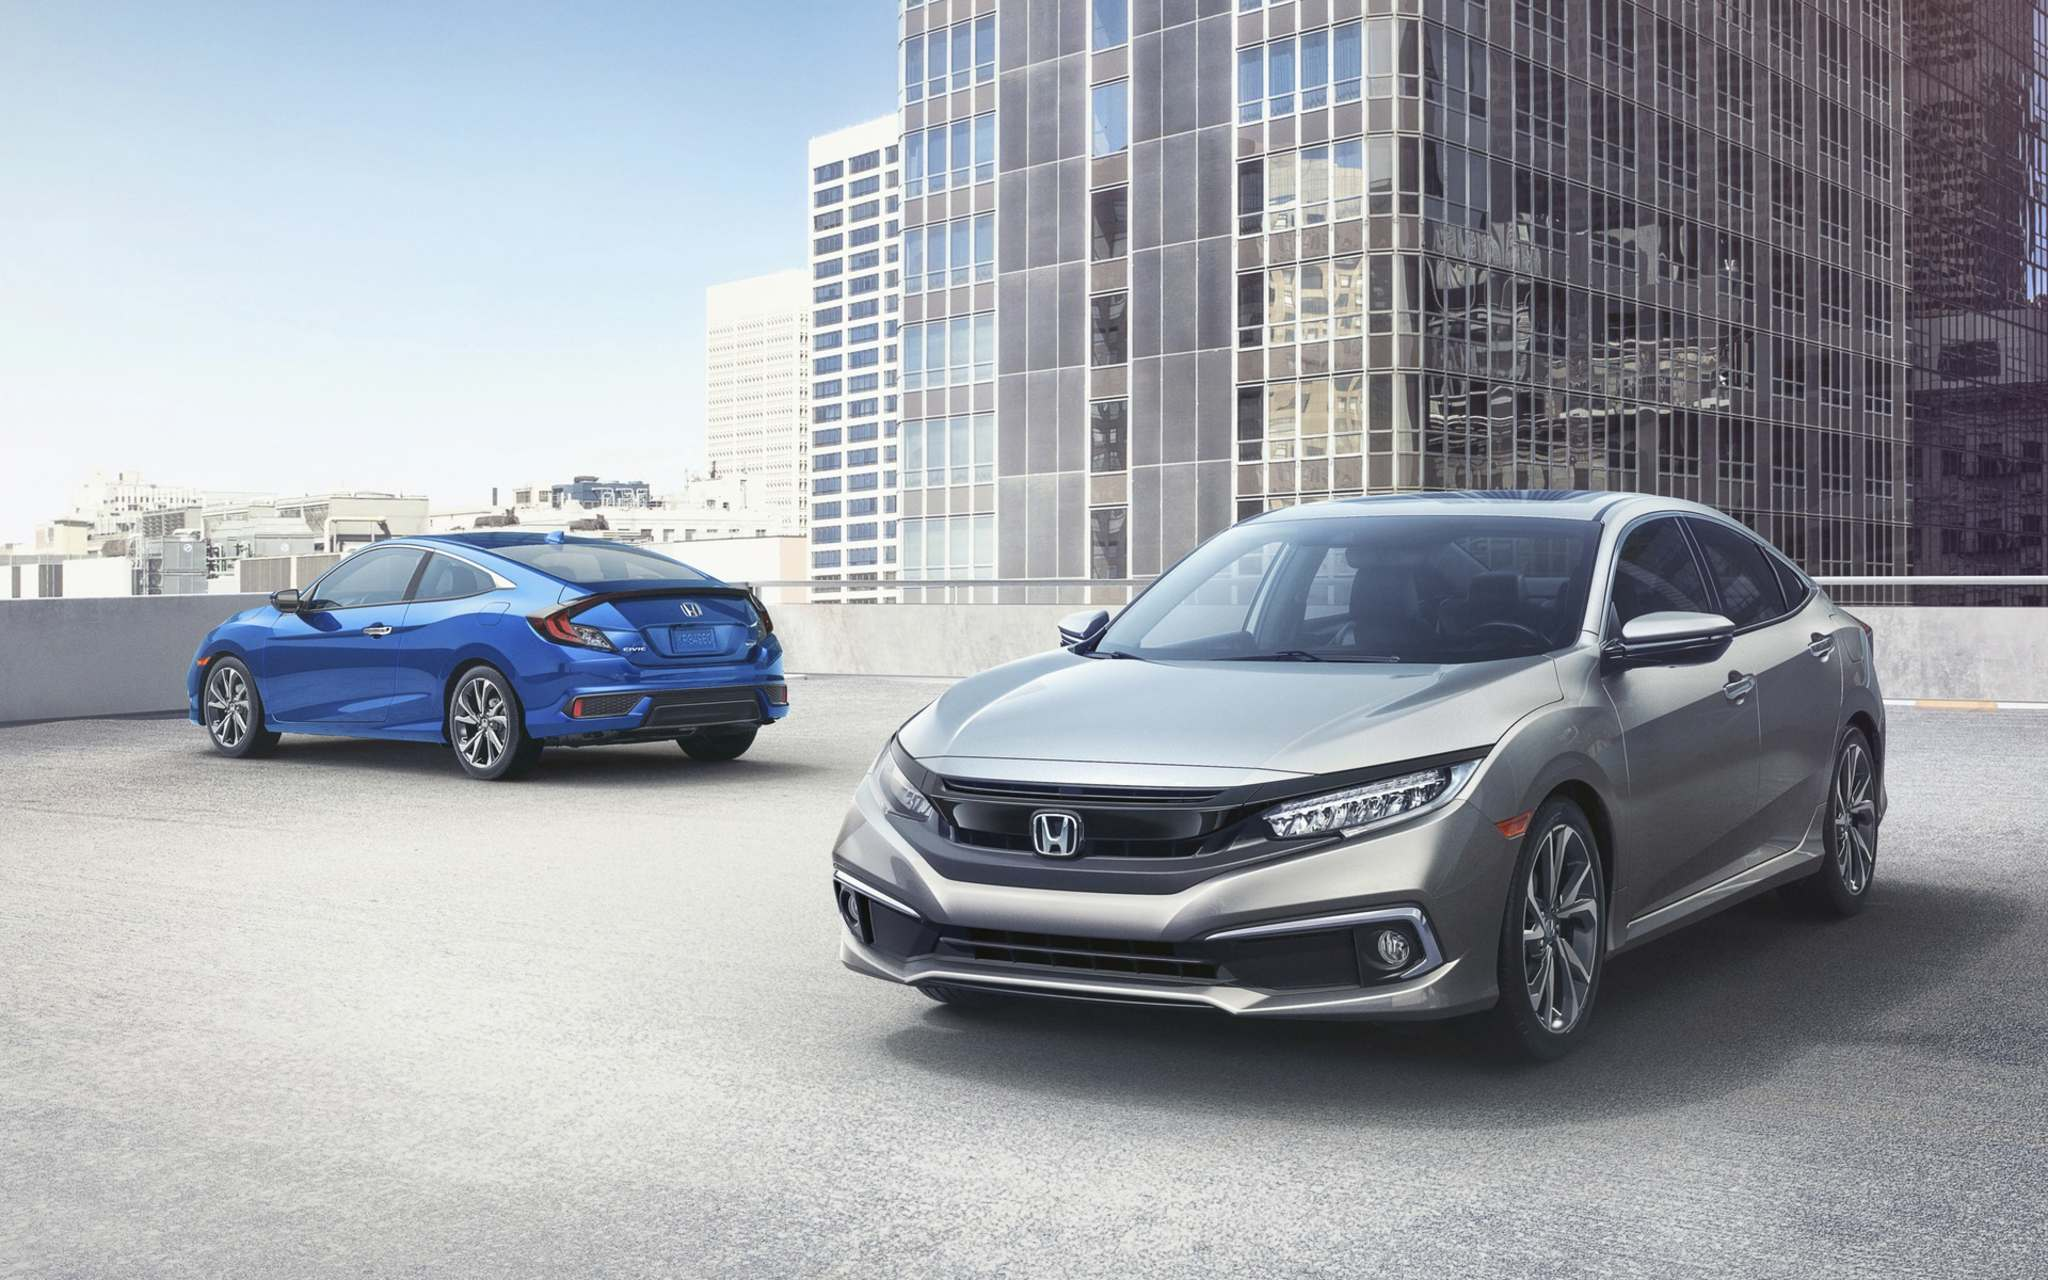 HondaFor 2019, all versions of Honda's Civic Sedan and Civic Coupe receive a restyled front fascia.